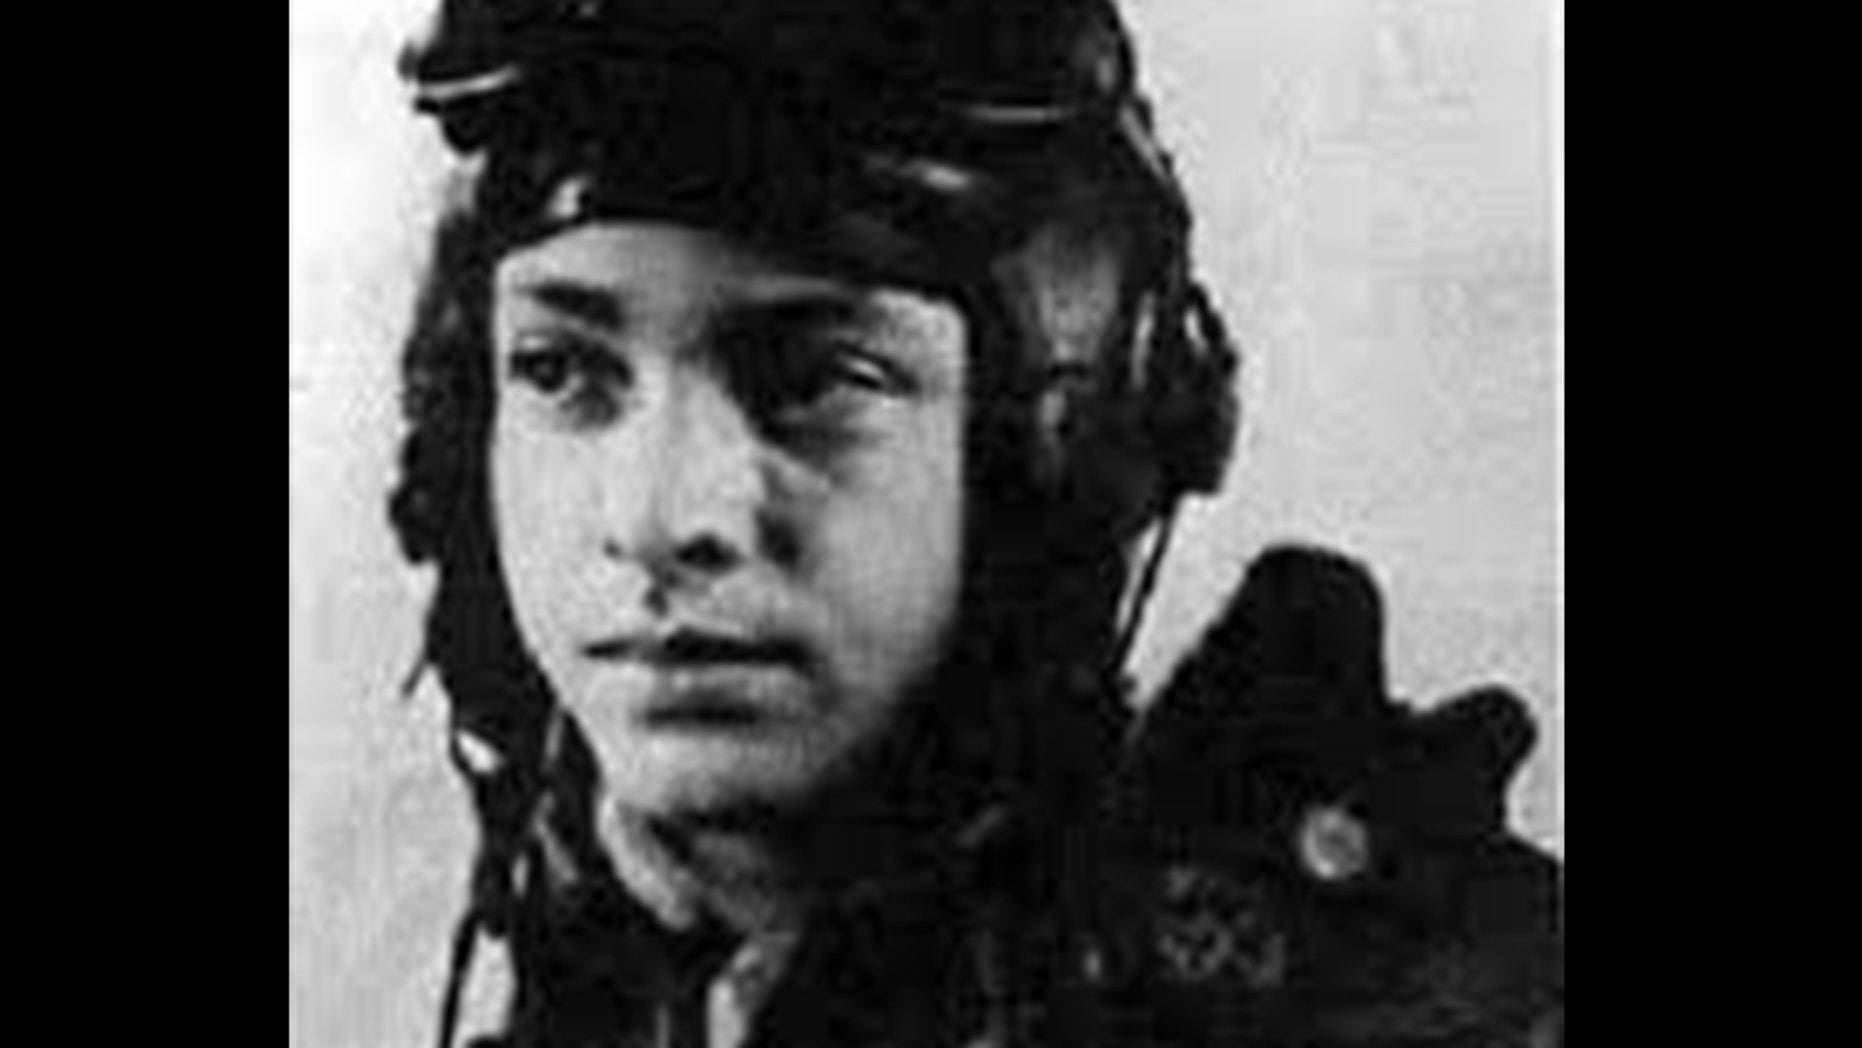 George Hardy, a Tuskegee airman, flew 21 World War II combat missions in the spring of 1945.